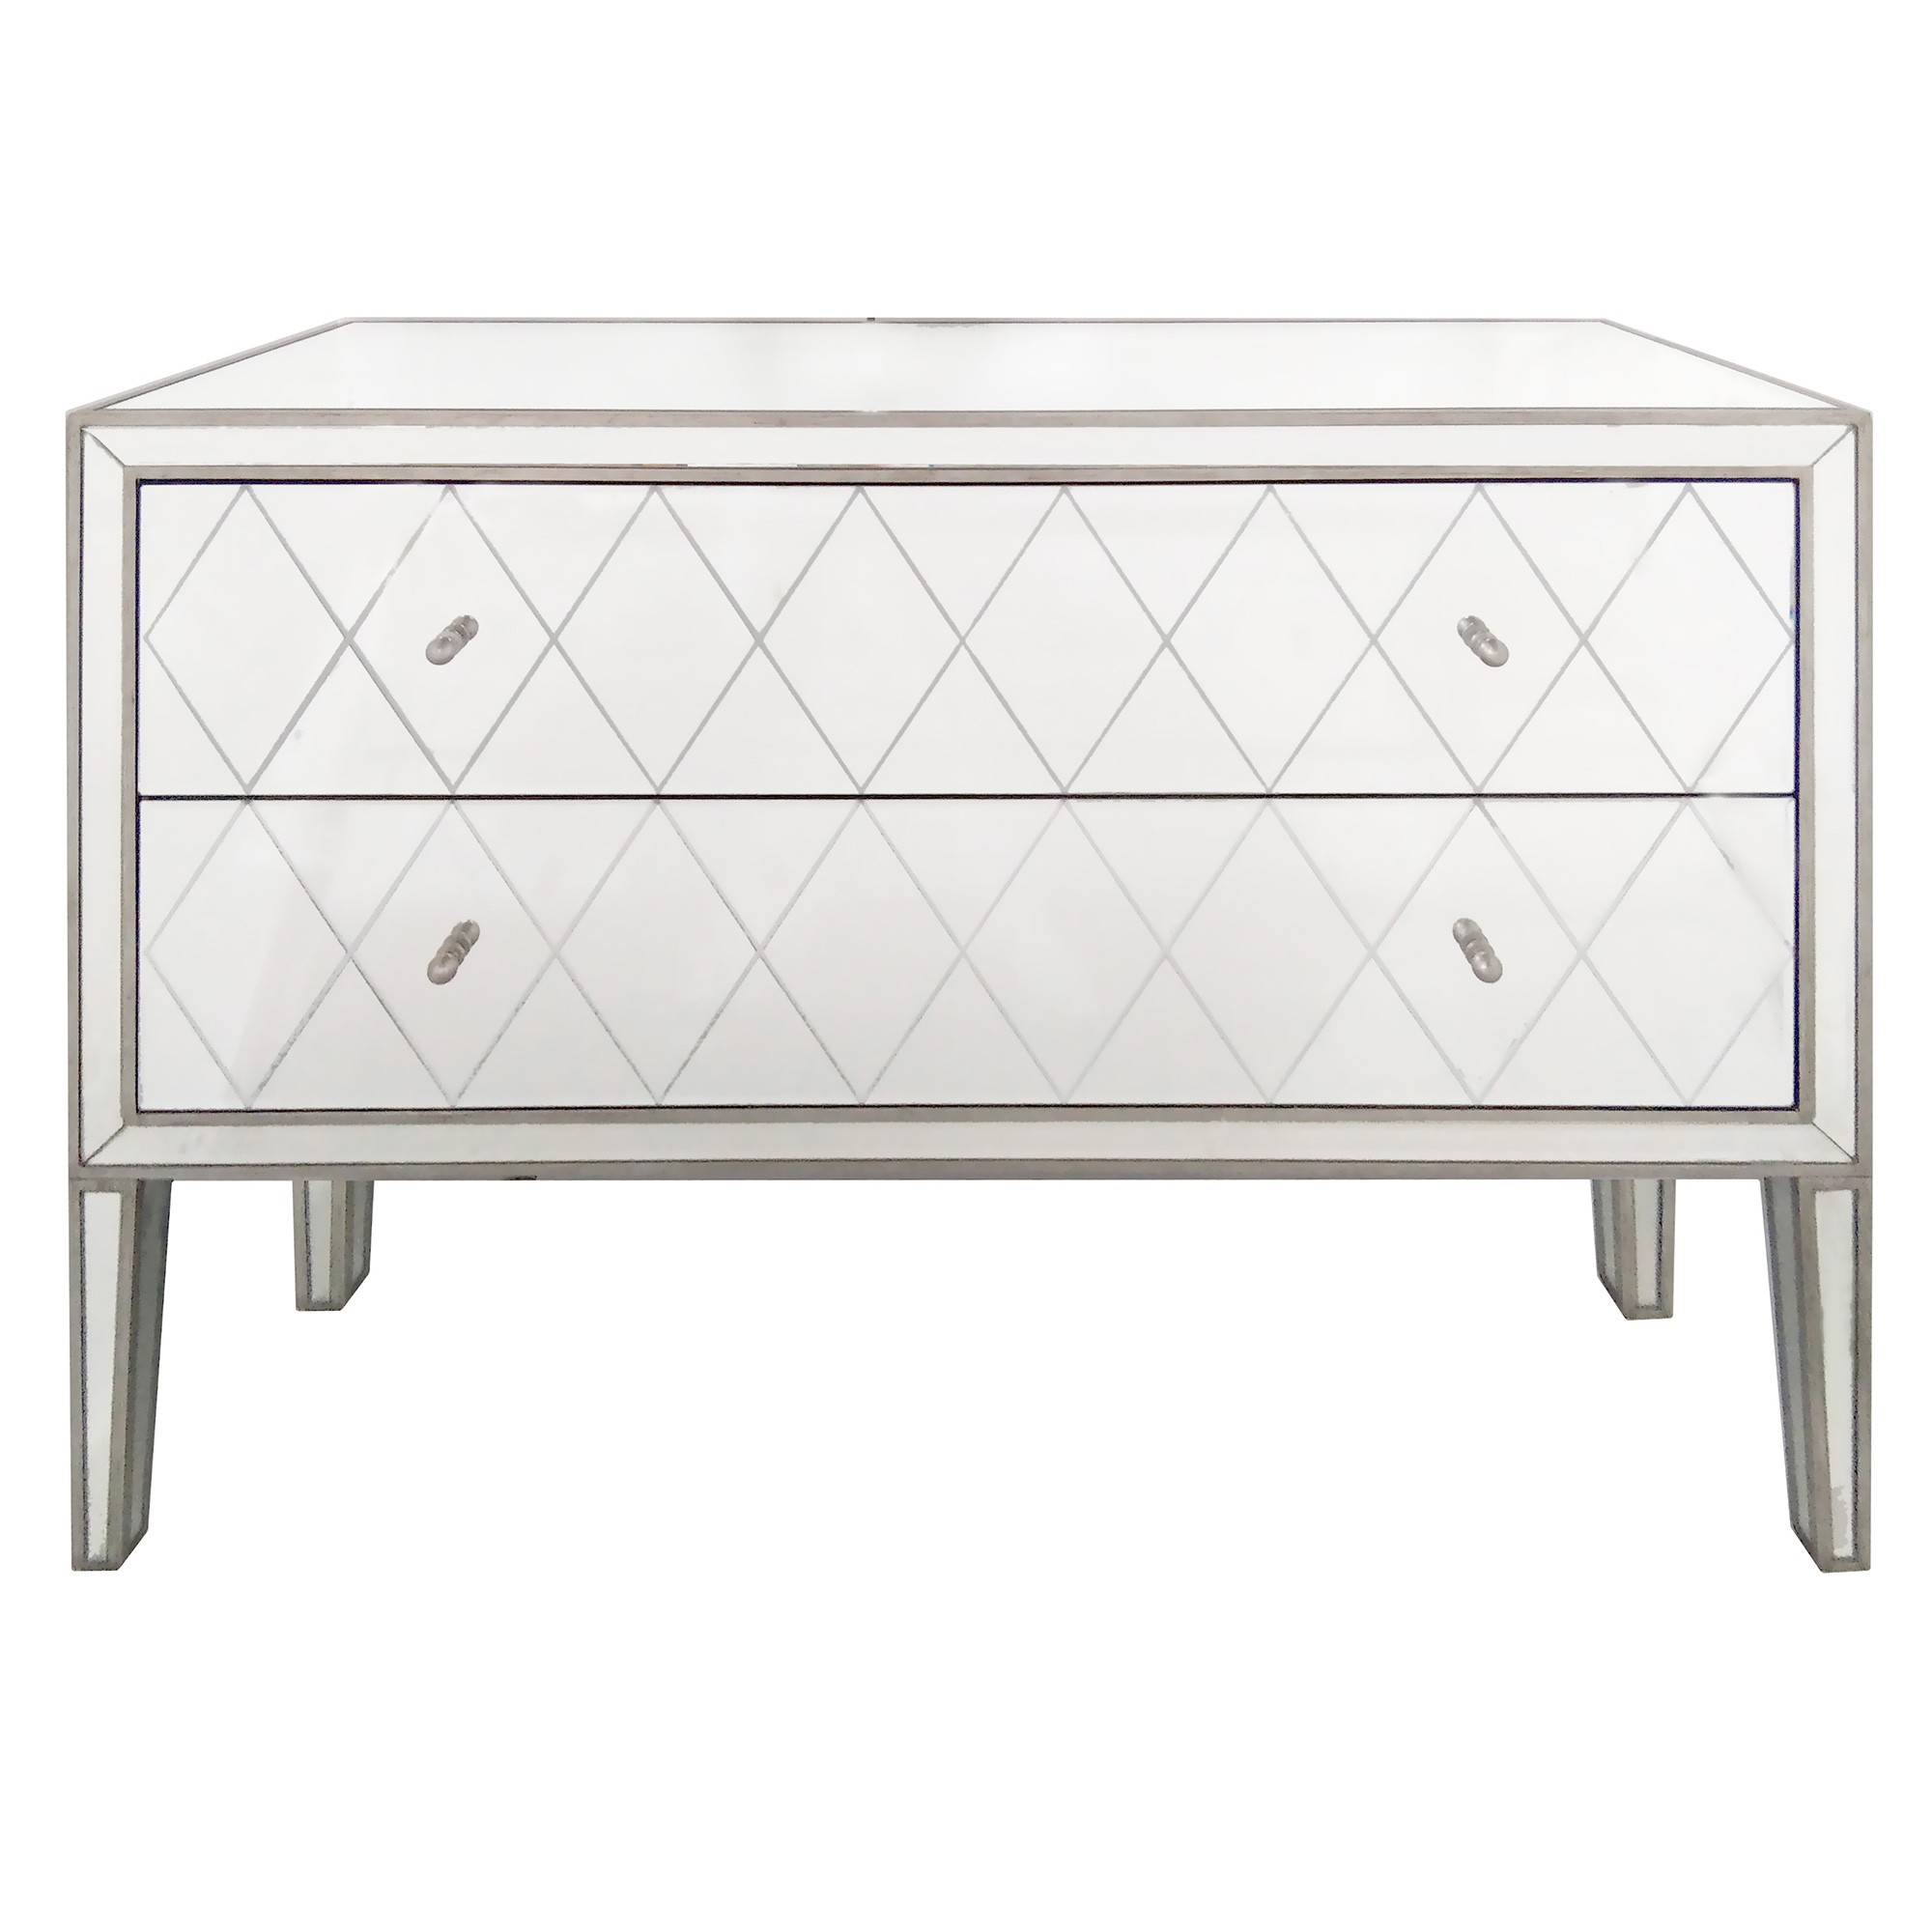 Krystal Mirrored 2 Drawer Chest